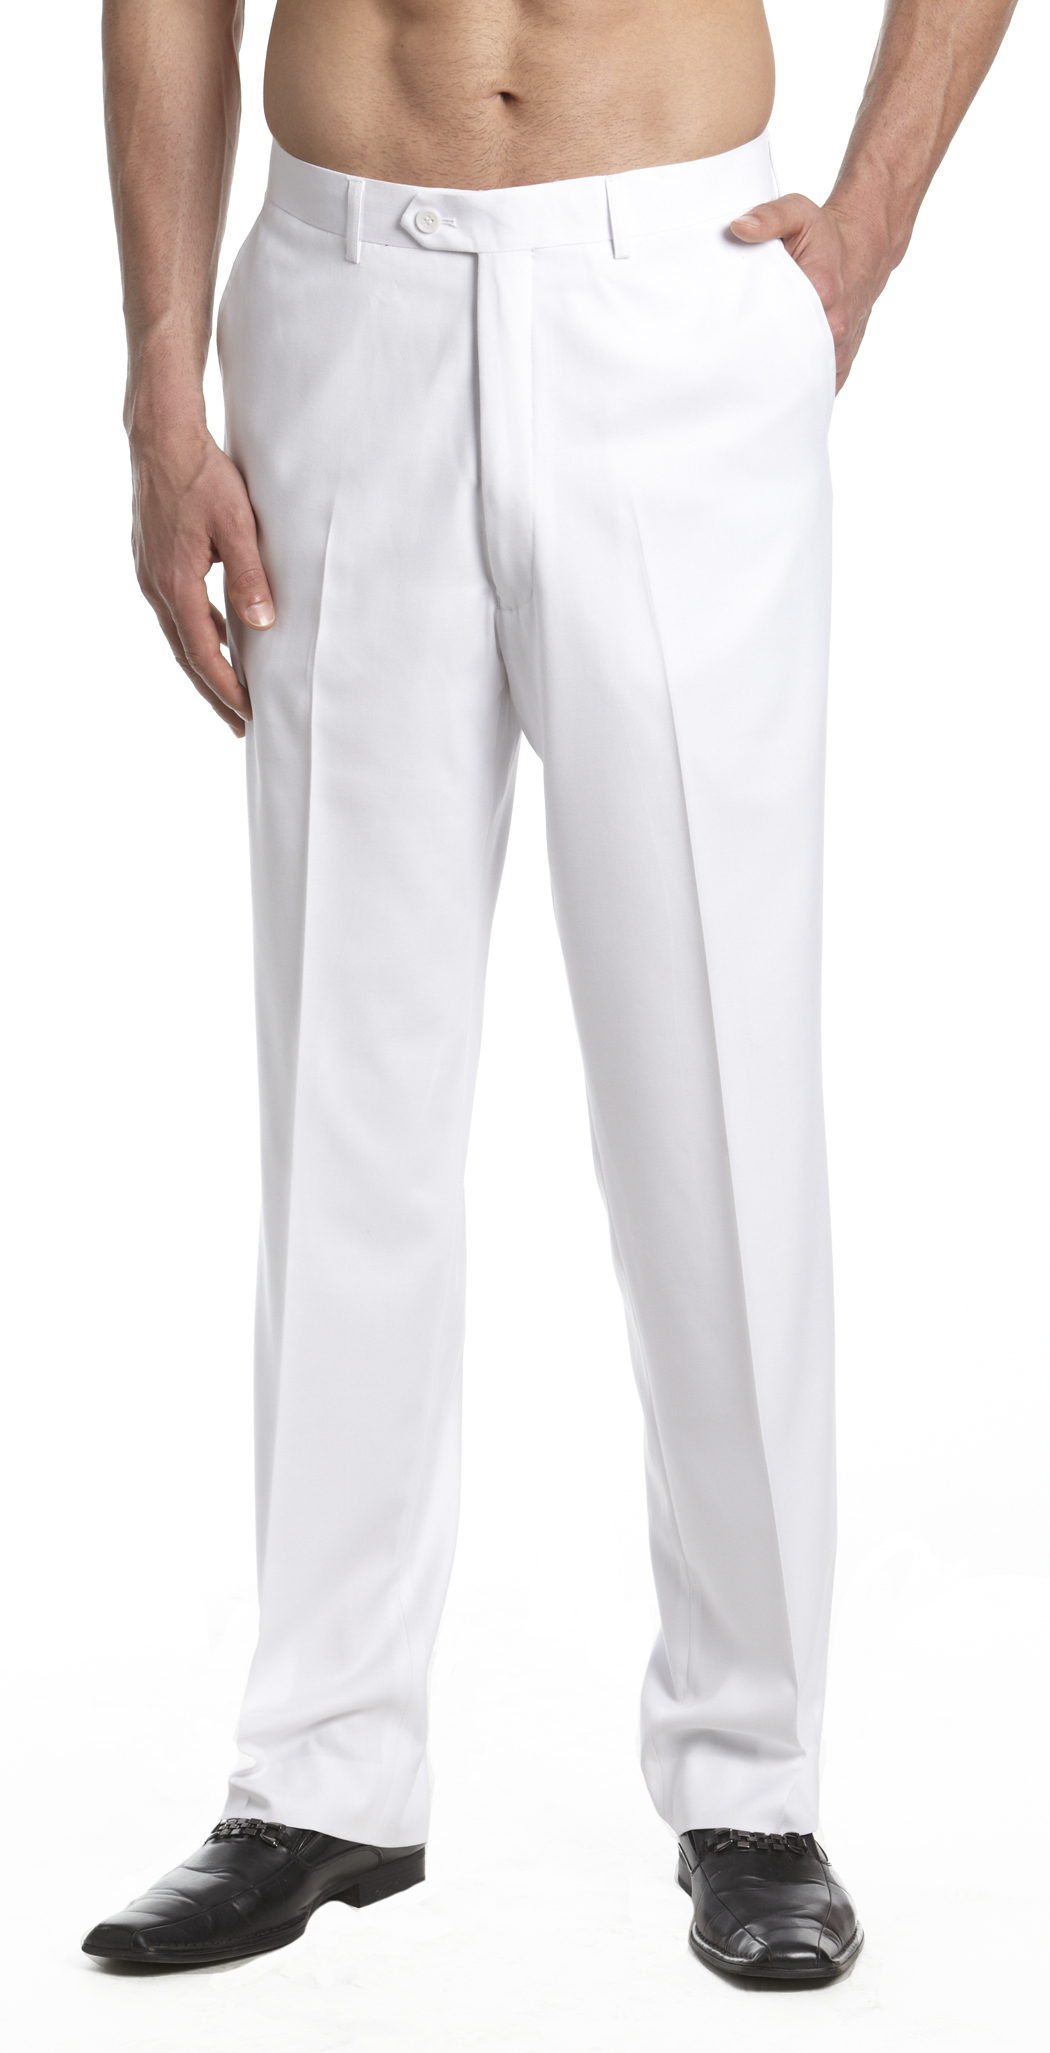 Buy low price, high quality white dress pants men with worldwide shipping on nirtsnom.tk